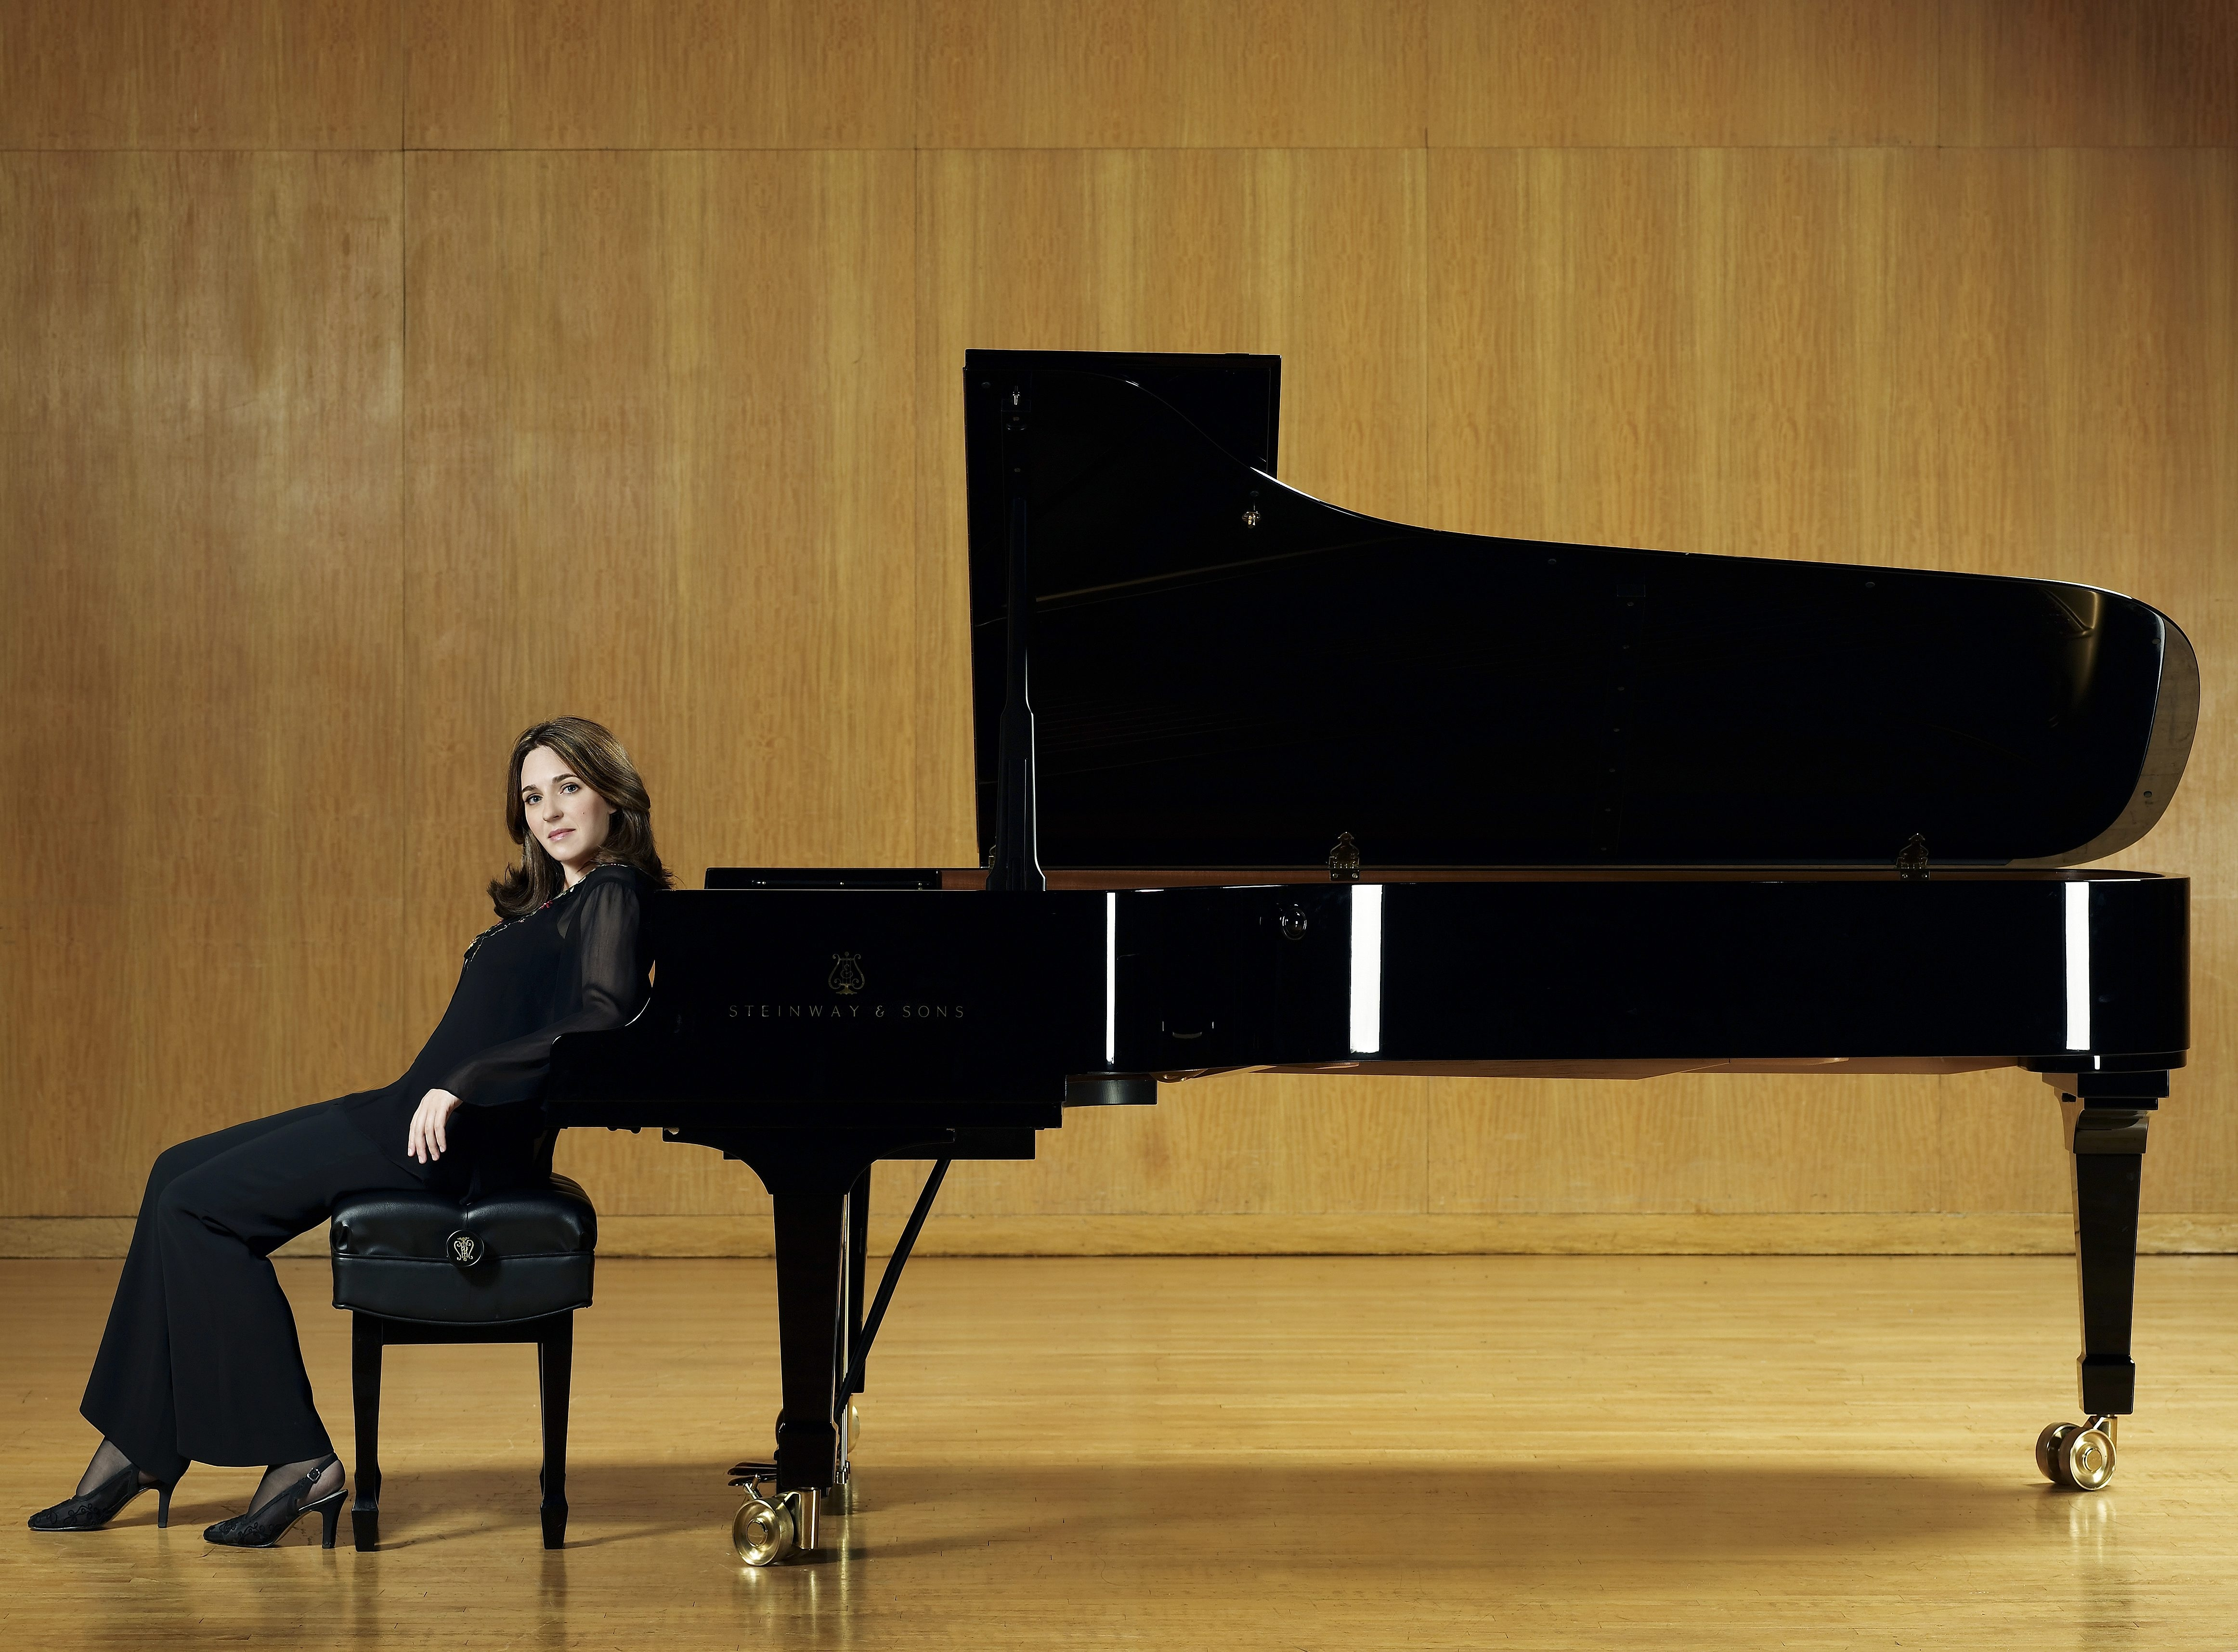 Pianist Simone Dinnerstein will play Beethoven's Piano Concerto No. 2 on Nov. 22 and 23 in Kleinhans Music Hall.